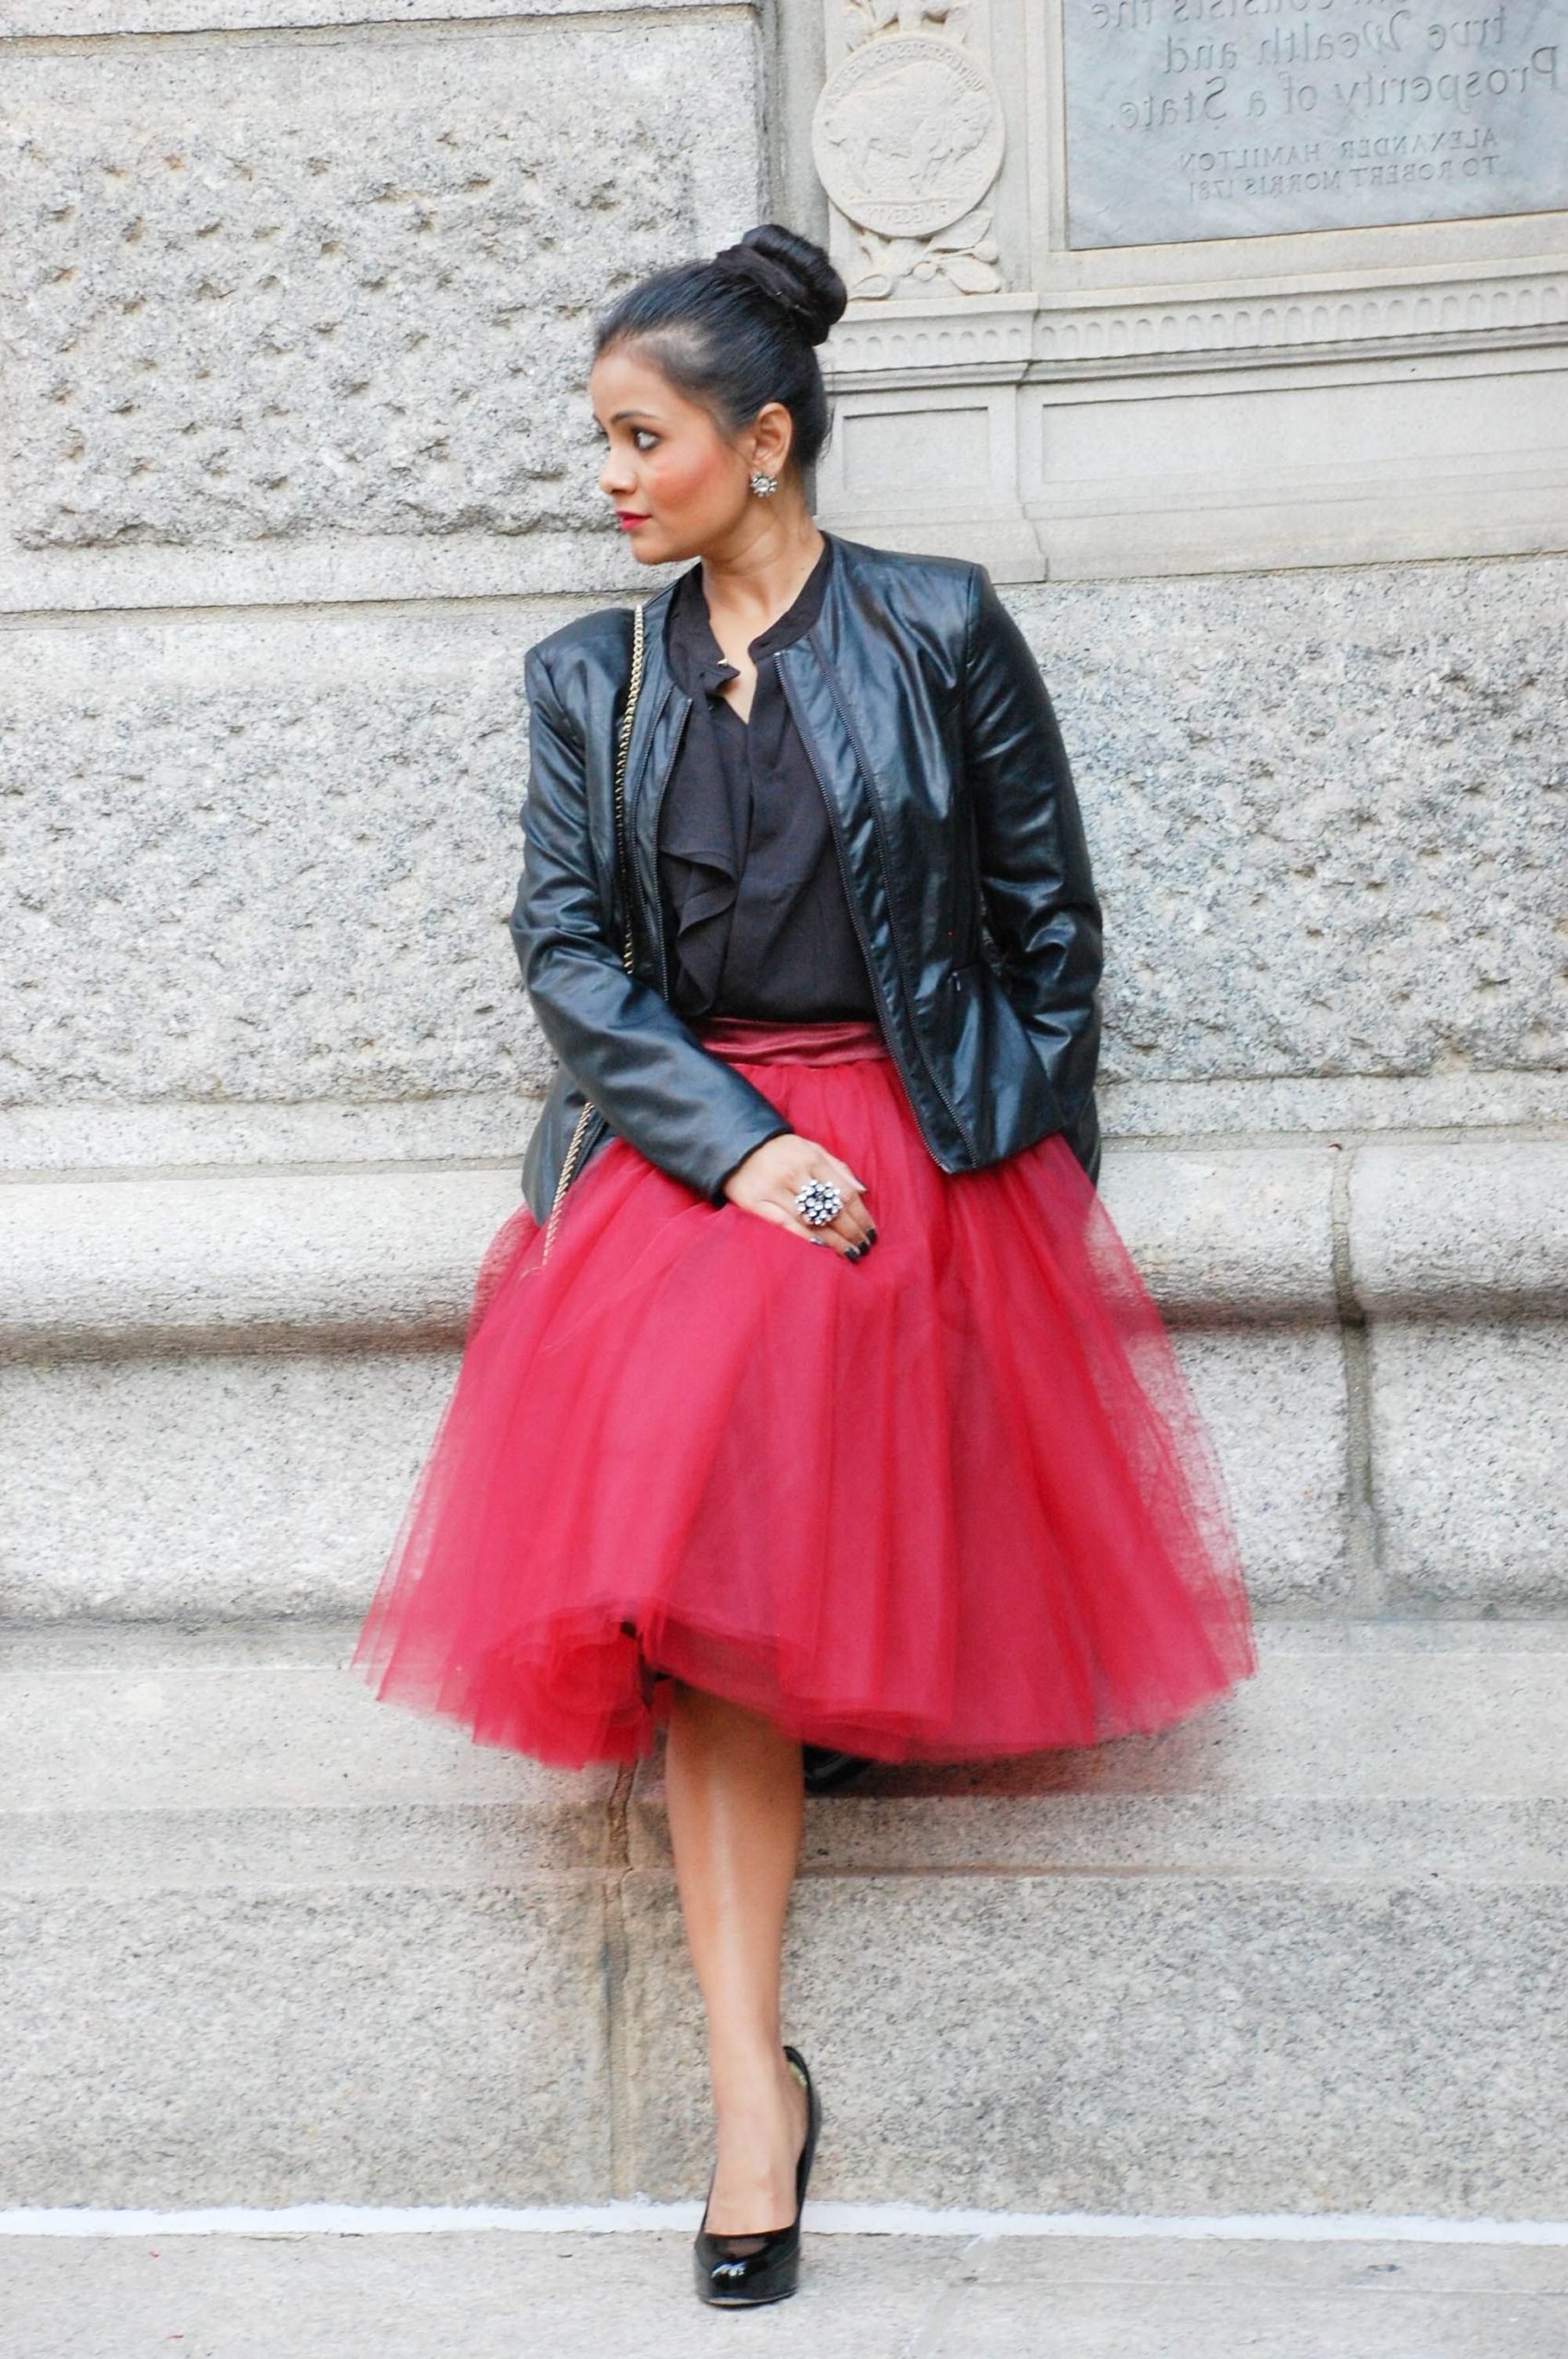 tulle skirt with tucked-in shirt